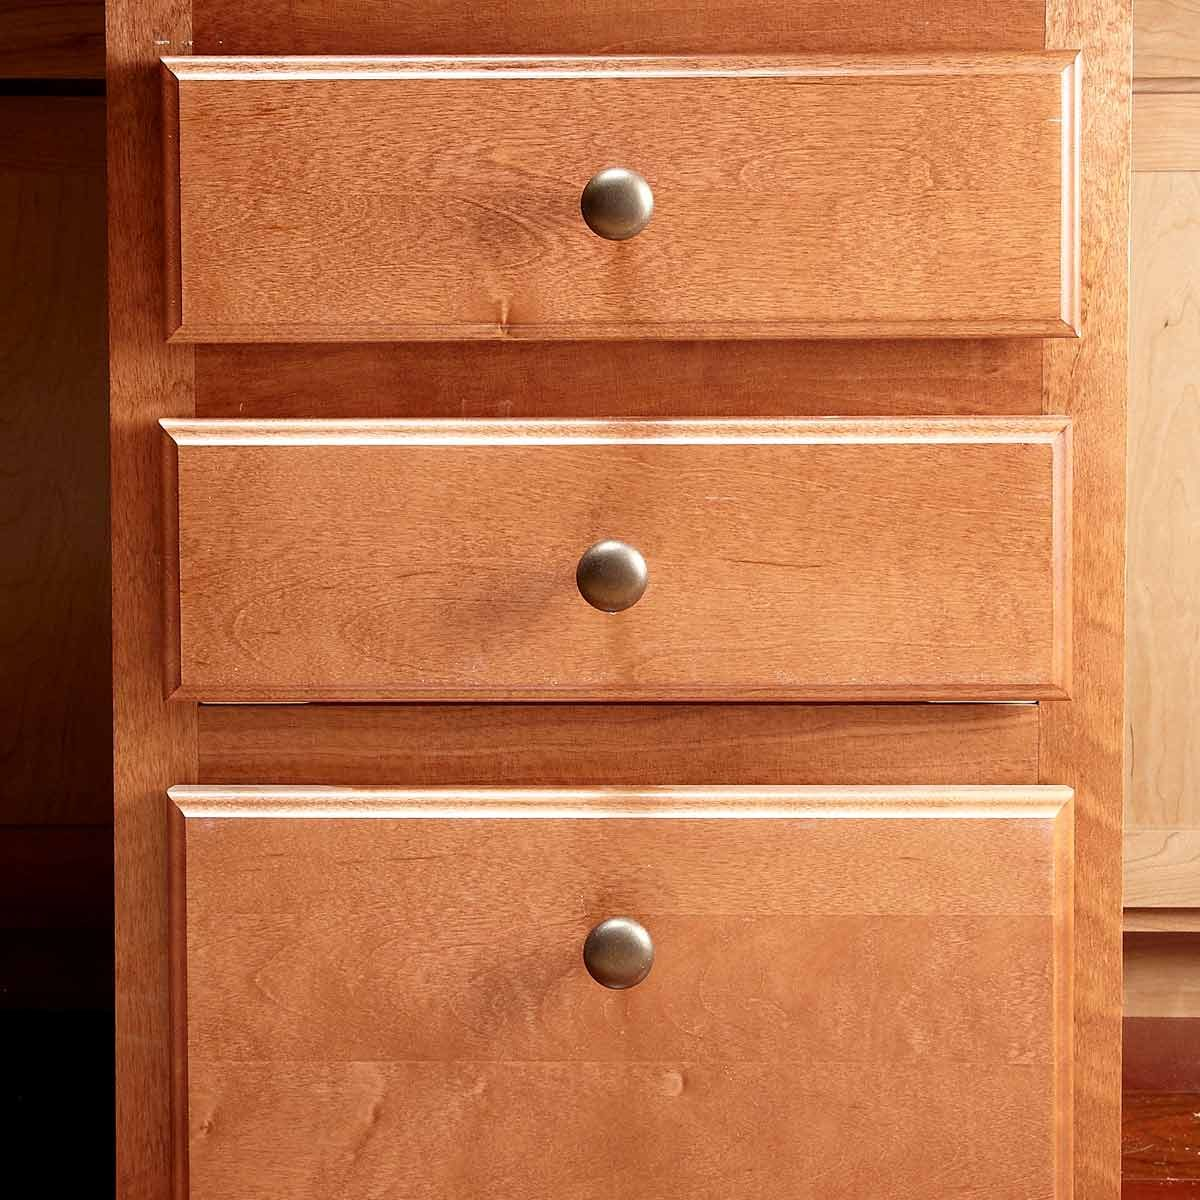 Install Hardware Higher on the Lowest Drawer